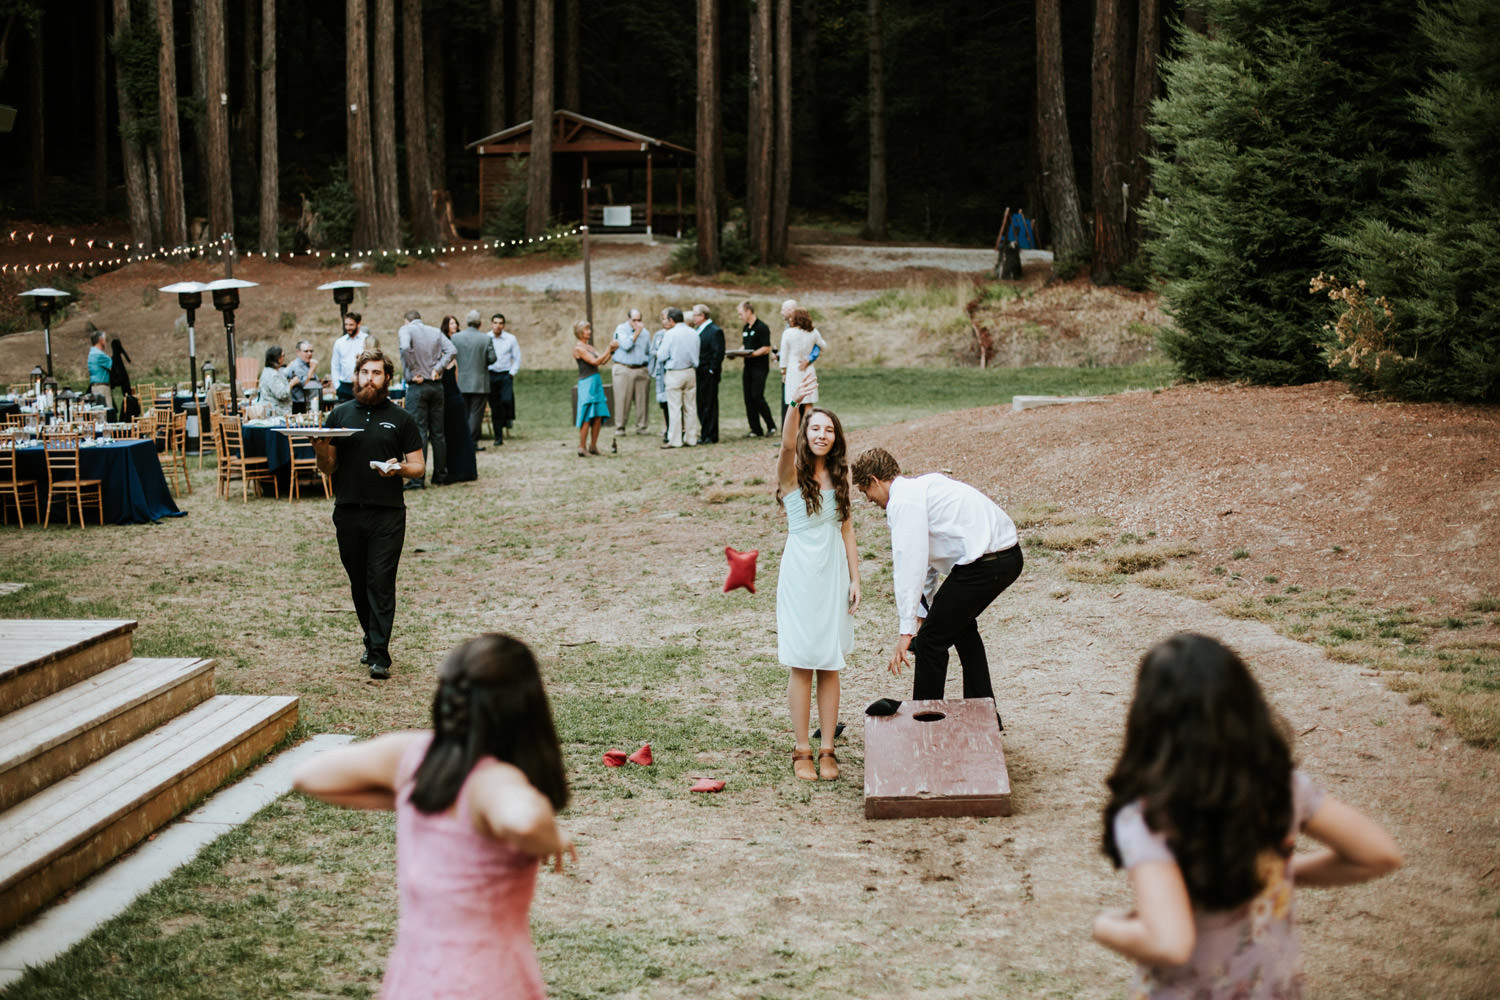 Wedding guest play games during the wedding at Camp Campbell in California